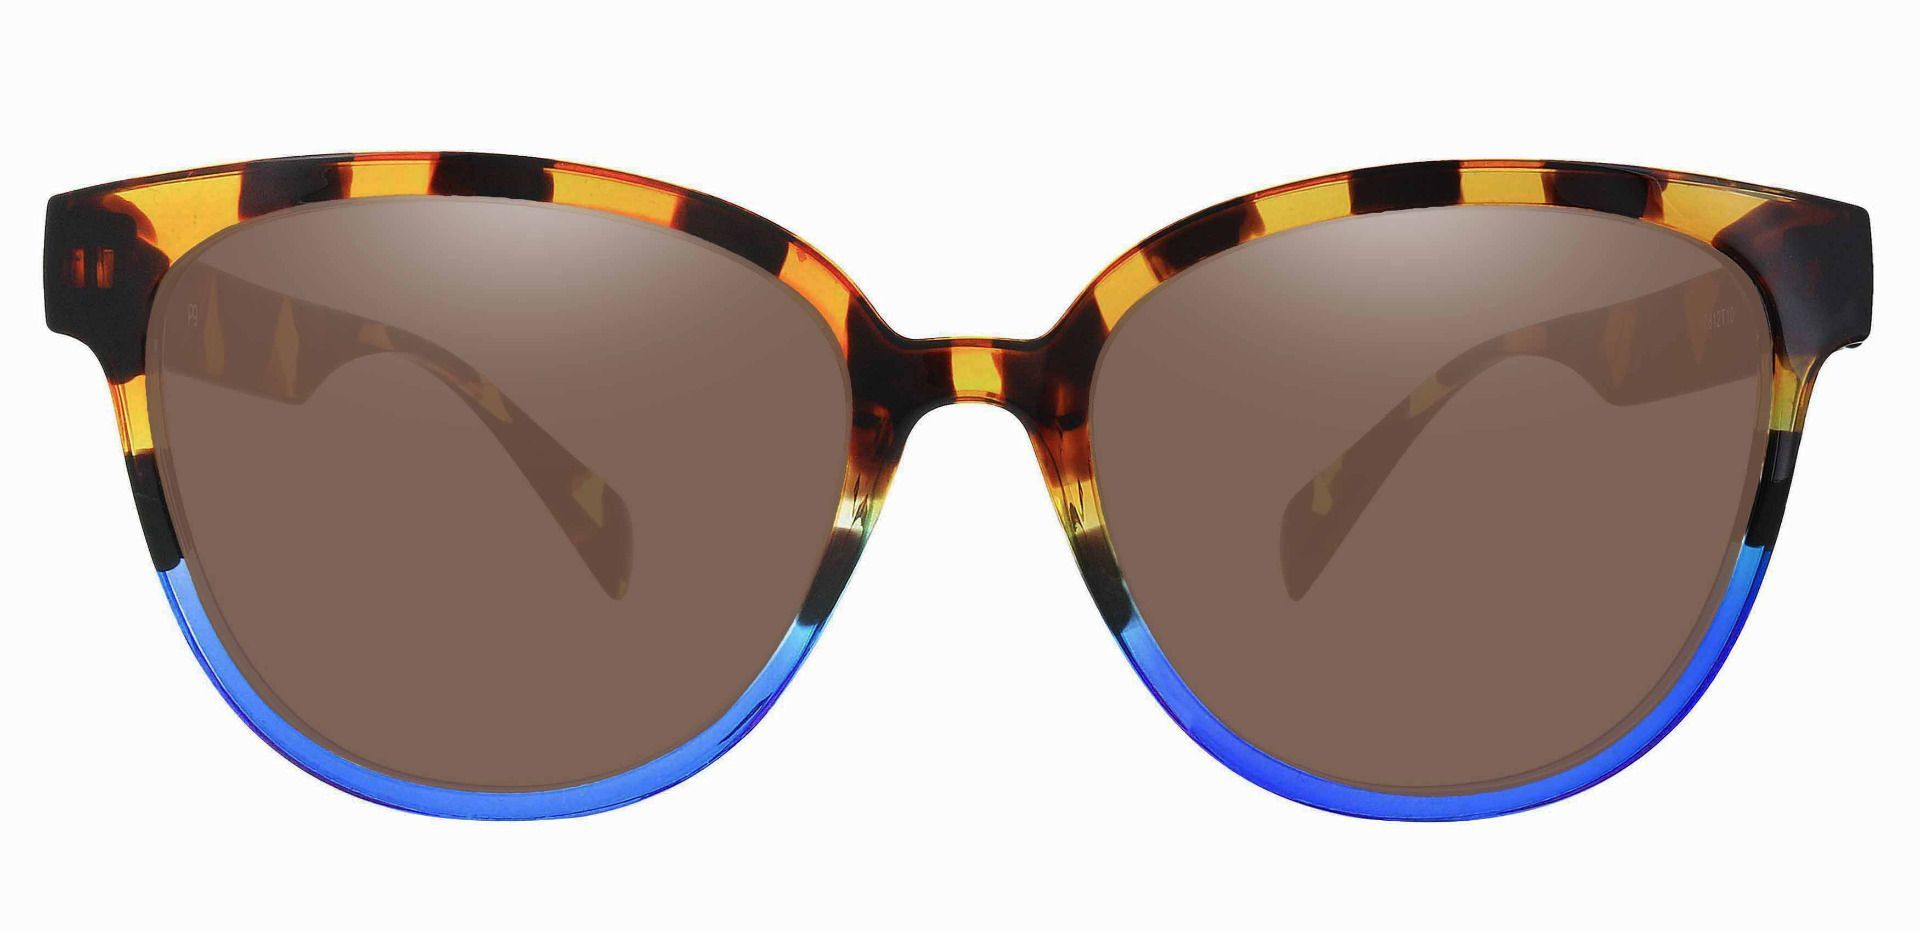 Newport Oval Non-Rx Sunglasses - Tortoise Frame With Brown Lenses